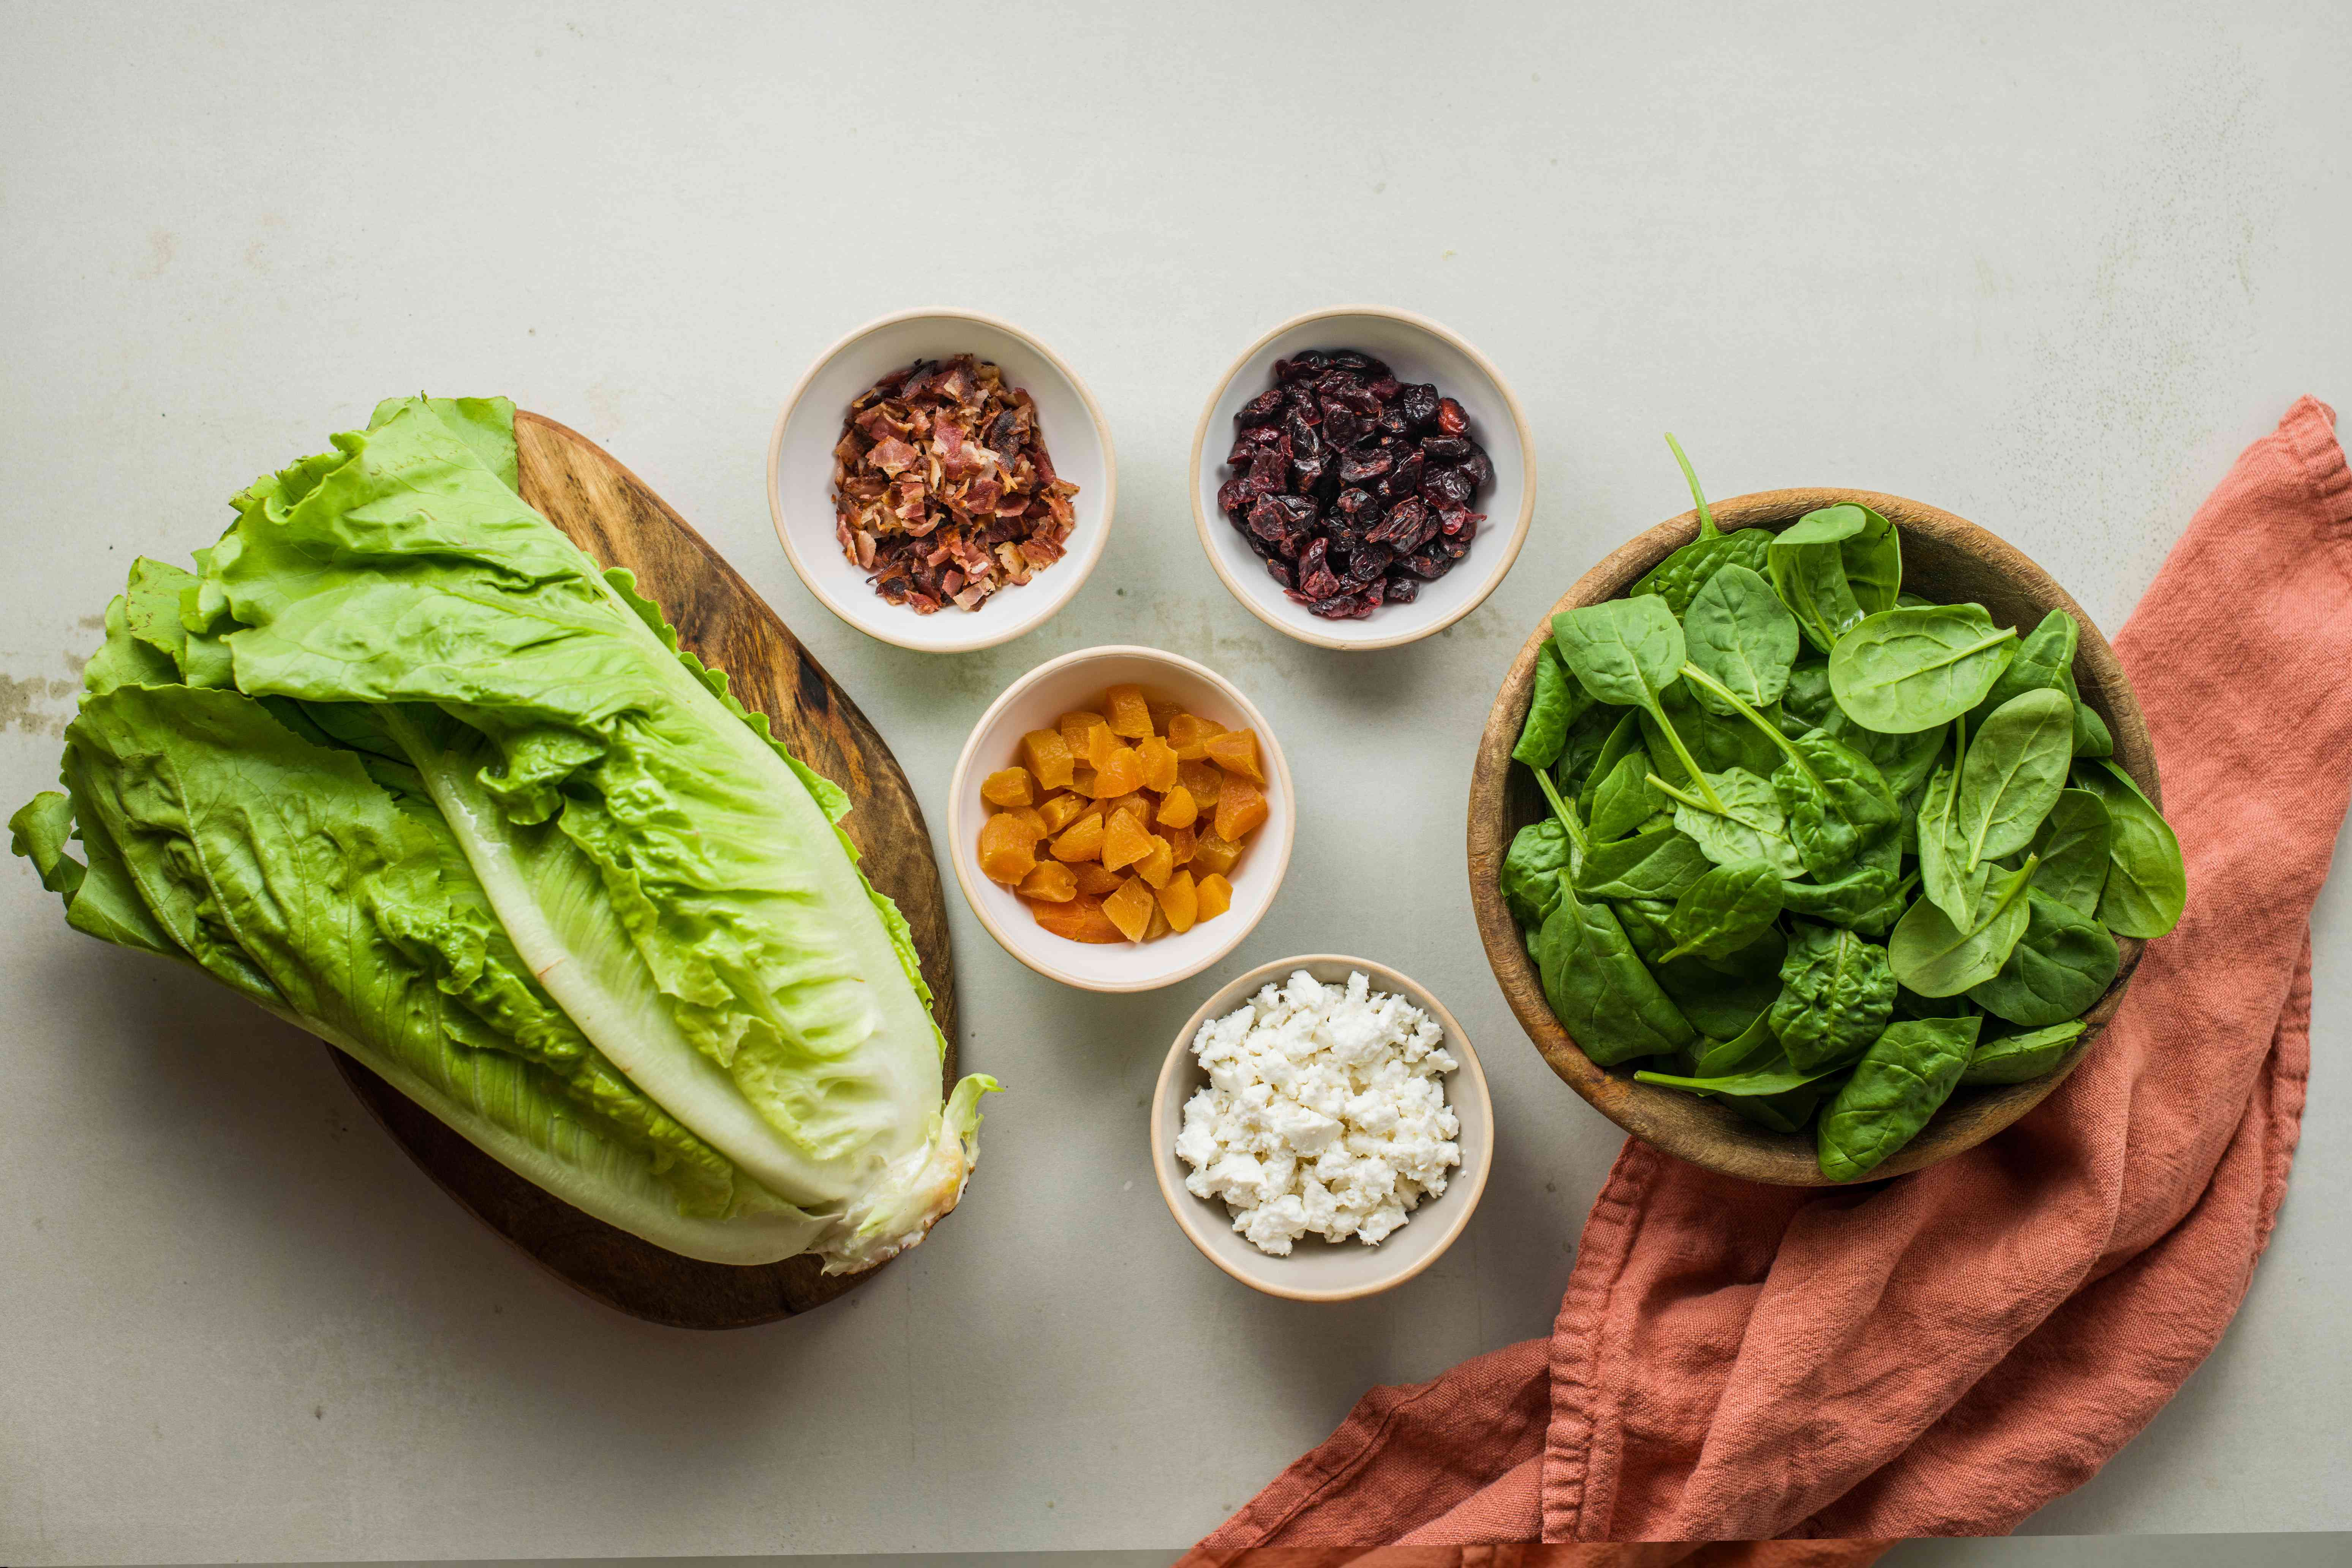 Ingredients for colorful autumn salad